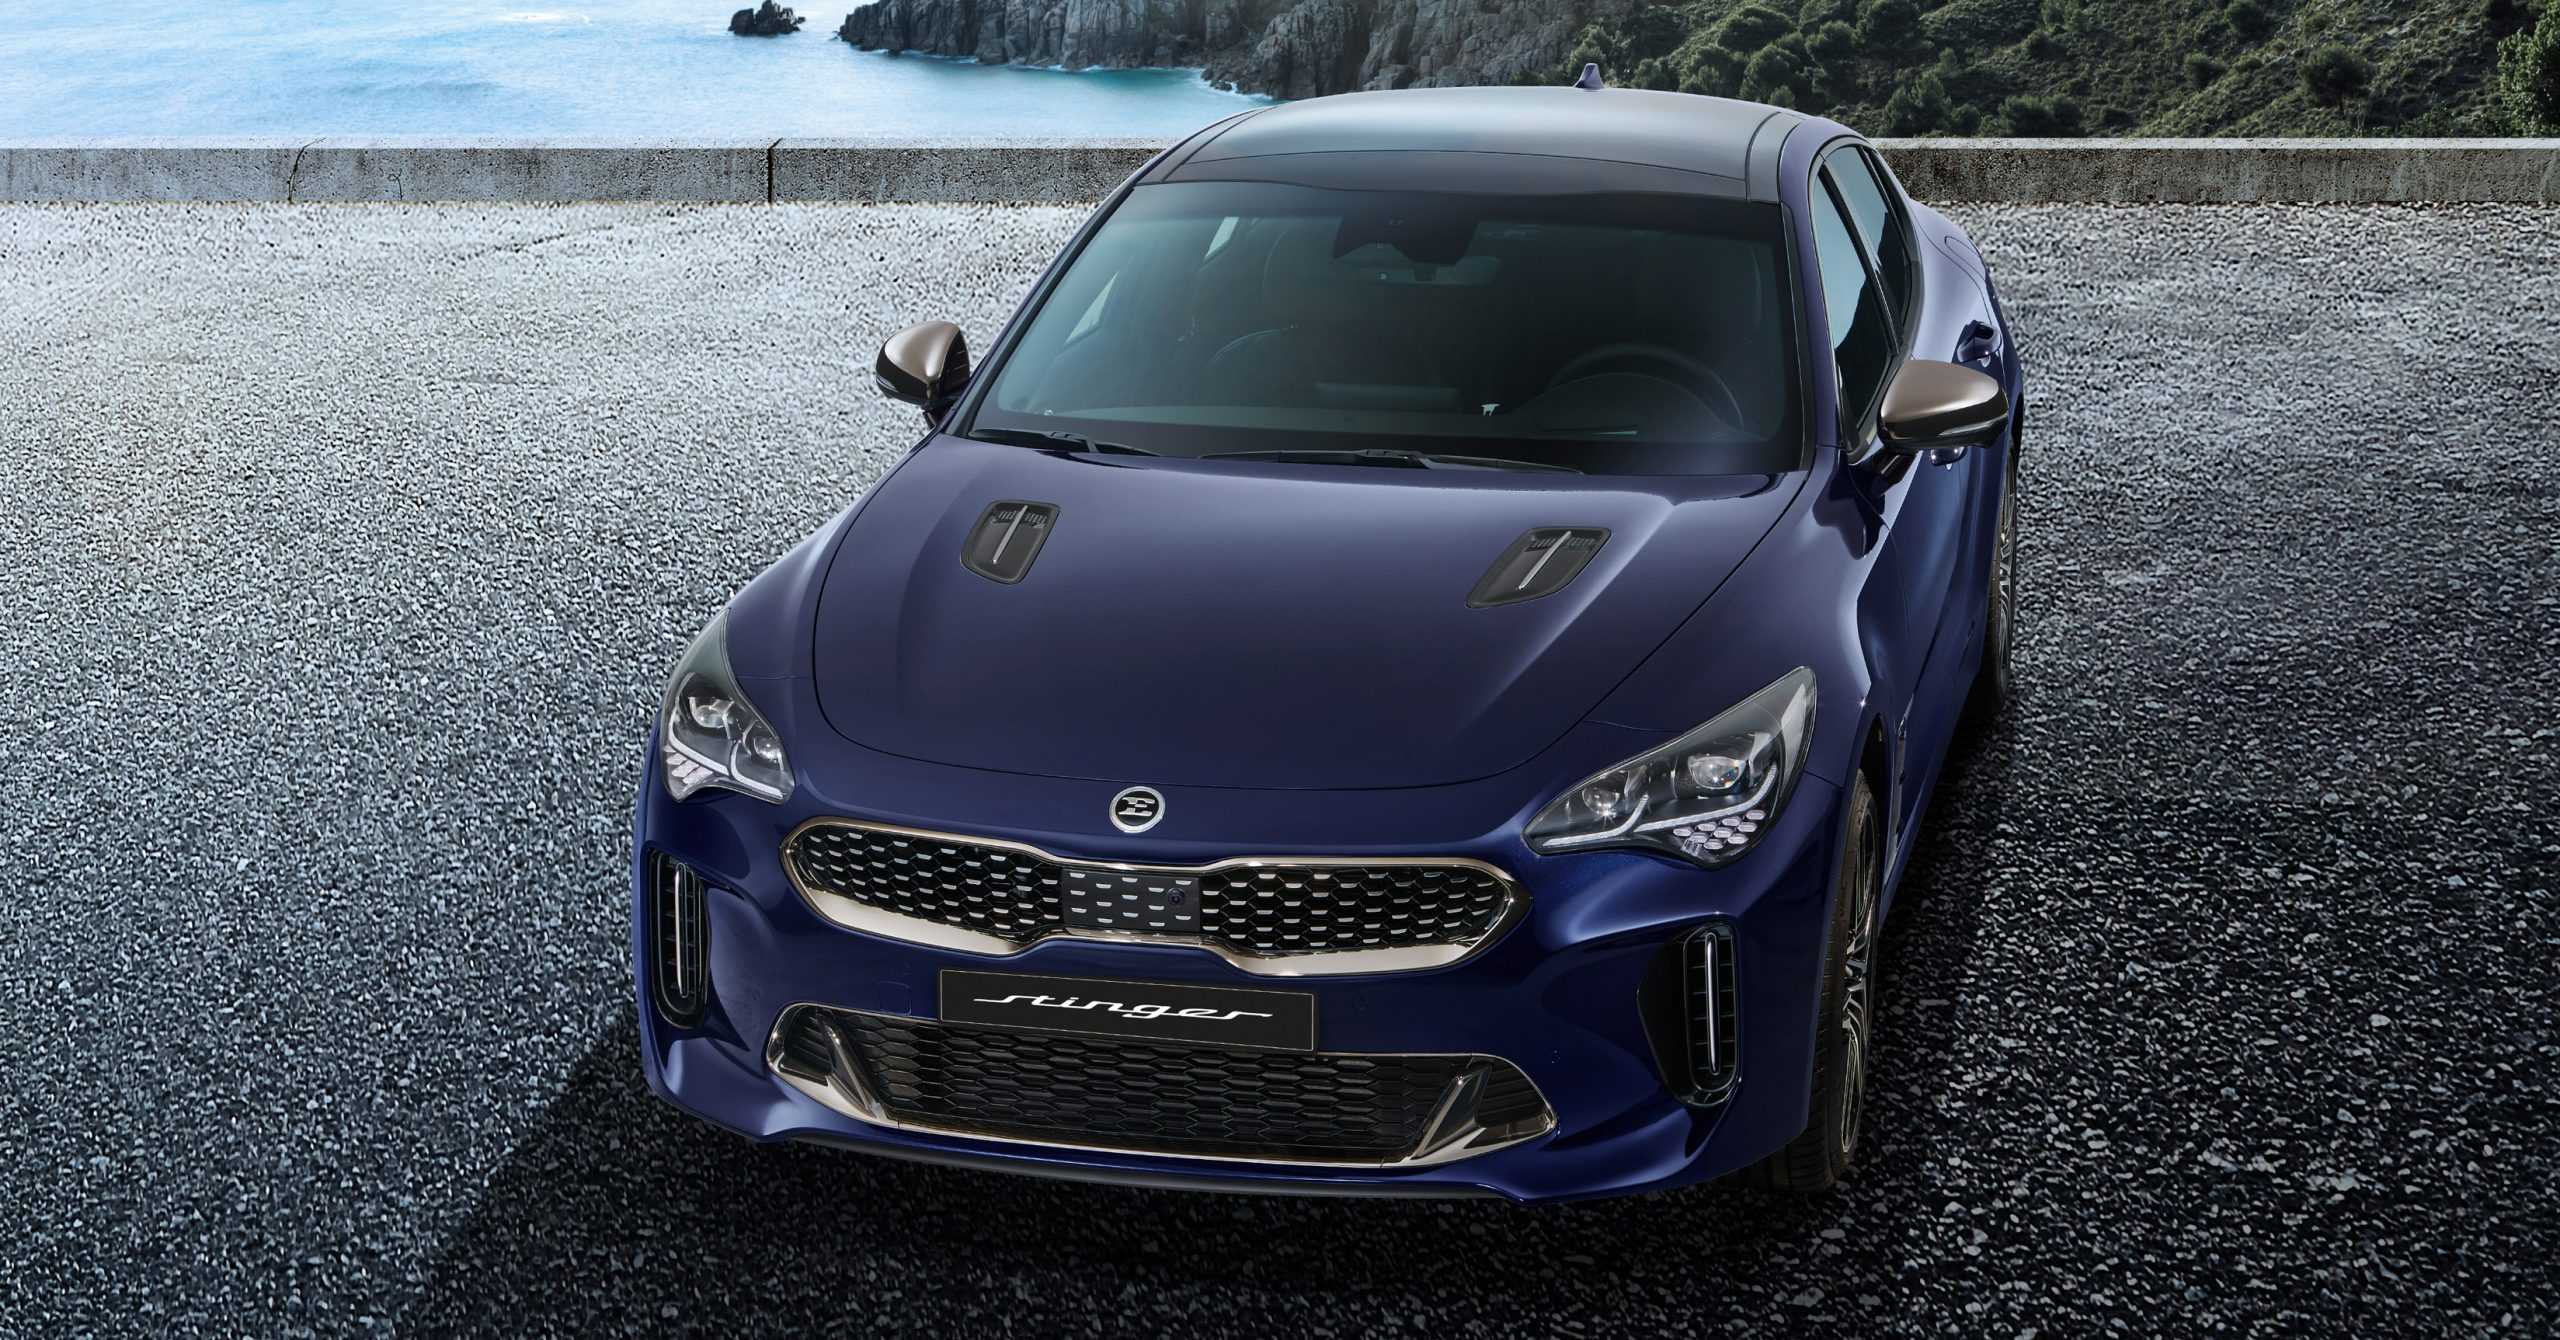 2020 Kia Stinger Powered by Turbo V6, Read on For More Specs